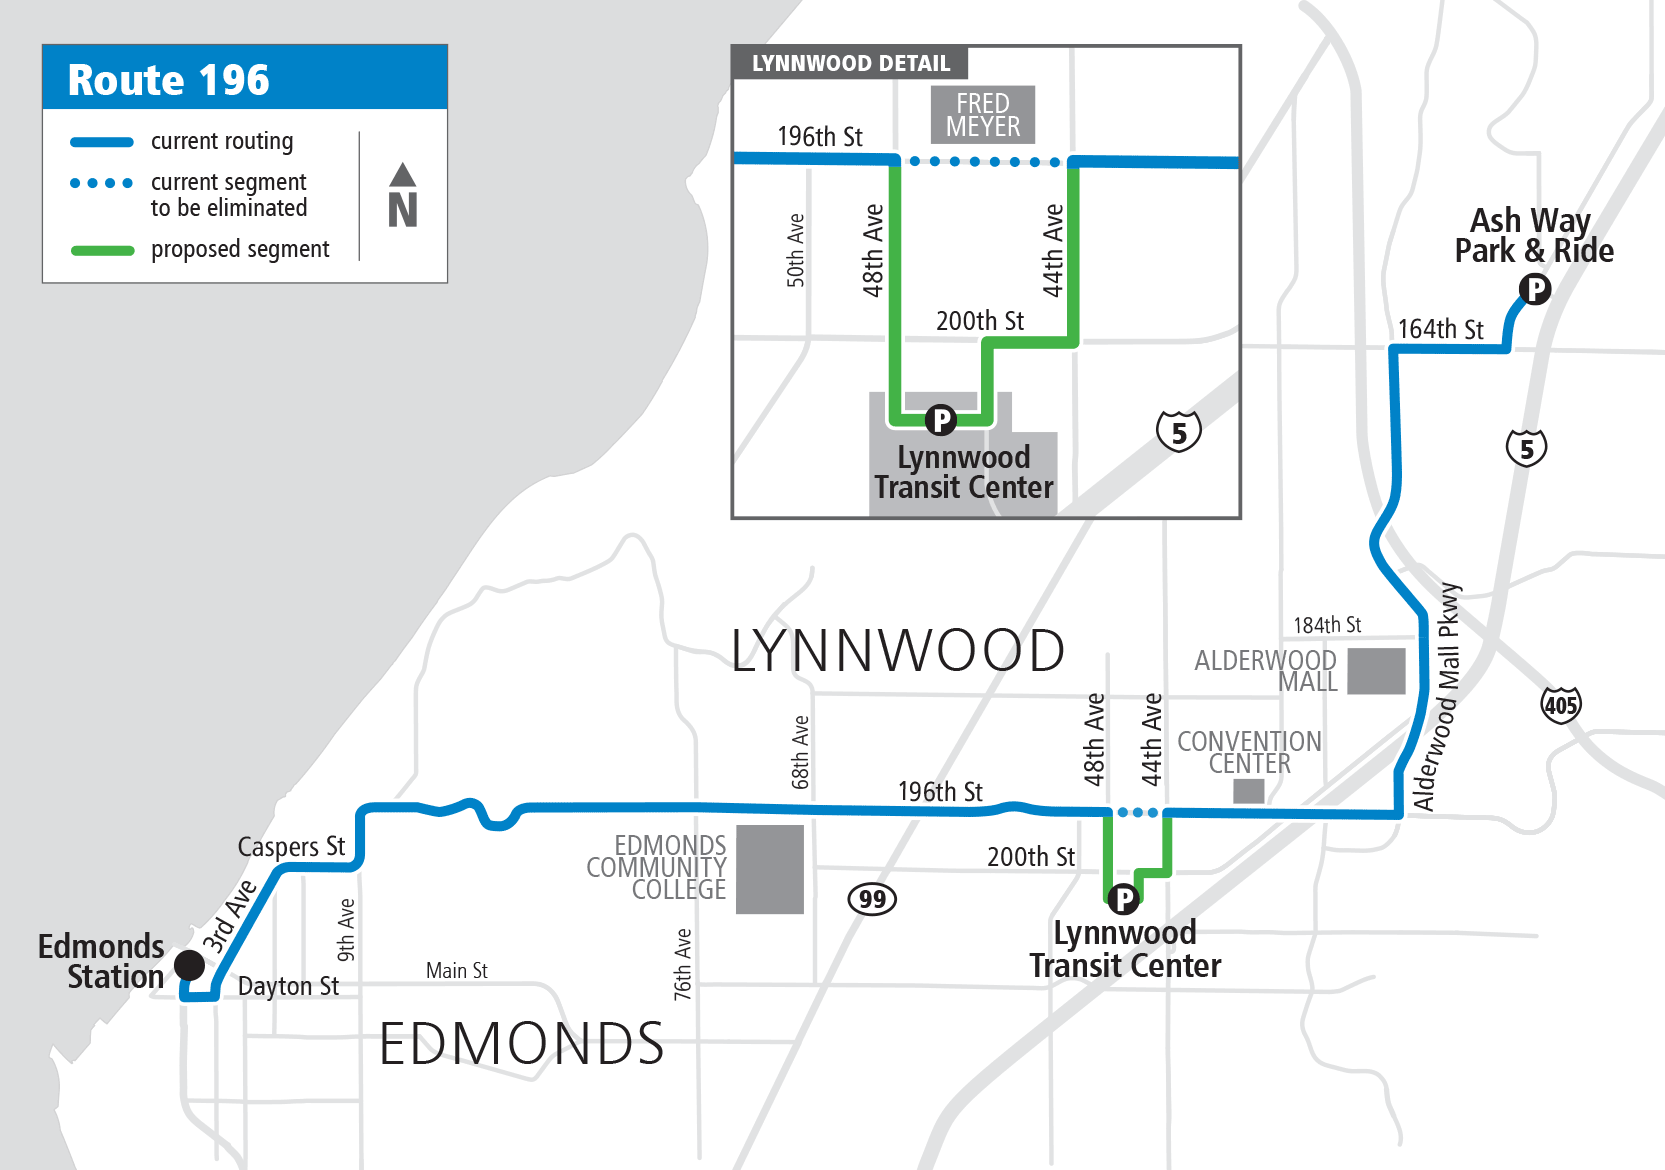 Community Transit Proposes Fall 2018 and Spring 2019 Service ... on map of lakeland square mall, map of puente hills mall, map of liberty tree mall, map of ridgmar mall, map of mondawmin mall, map of peachtree mall, map of imperial valley mall, map of monmouth mall, map of deptford mall stores, map of the oaks mall, map of quaker bridge mall, map of the mall of acadiana, map of spring hill mall, map of patrick henry mall, map of westroads mall, map of chapel hill mall, map of southridge mall, map of oglethorpe mall, map of rogue valley mall, map of florence mall,